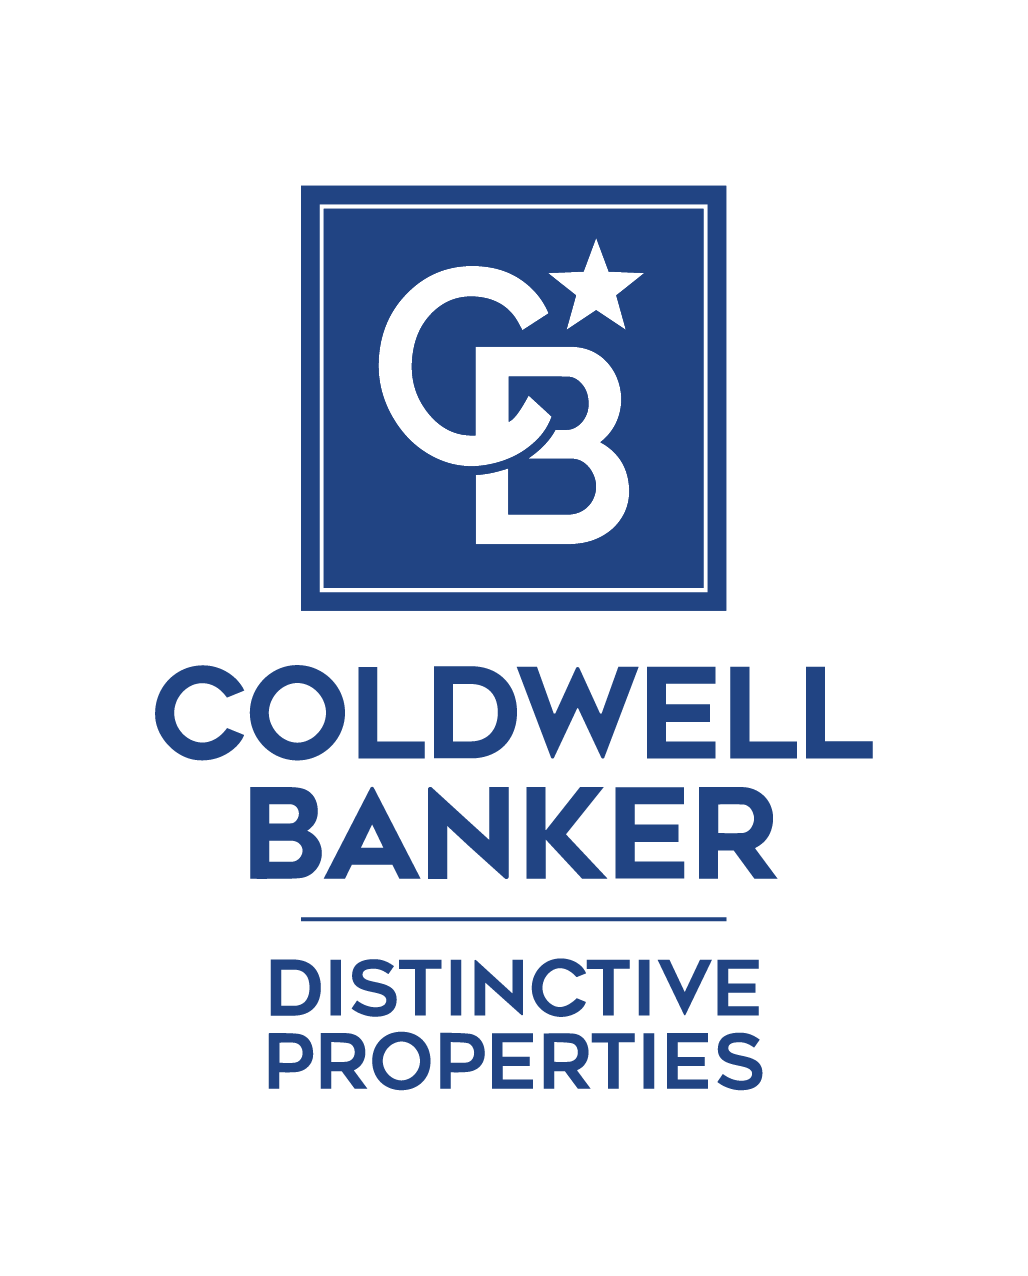 Stephen Deadwyler - Coldwell Banker Distinctive Properties